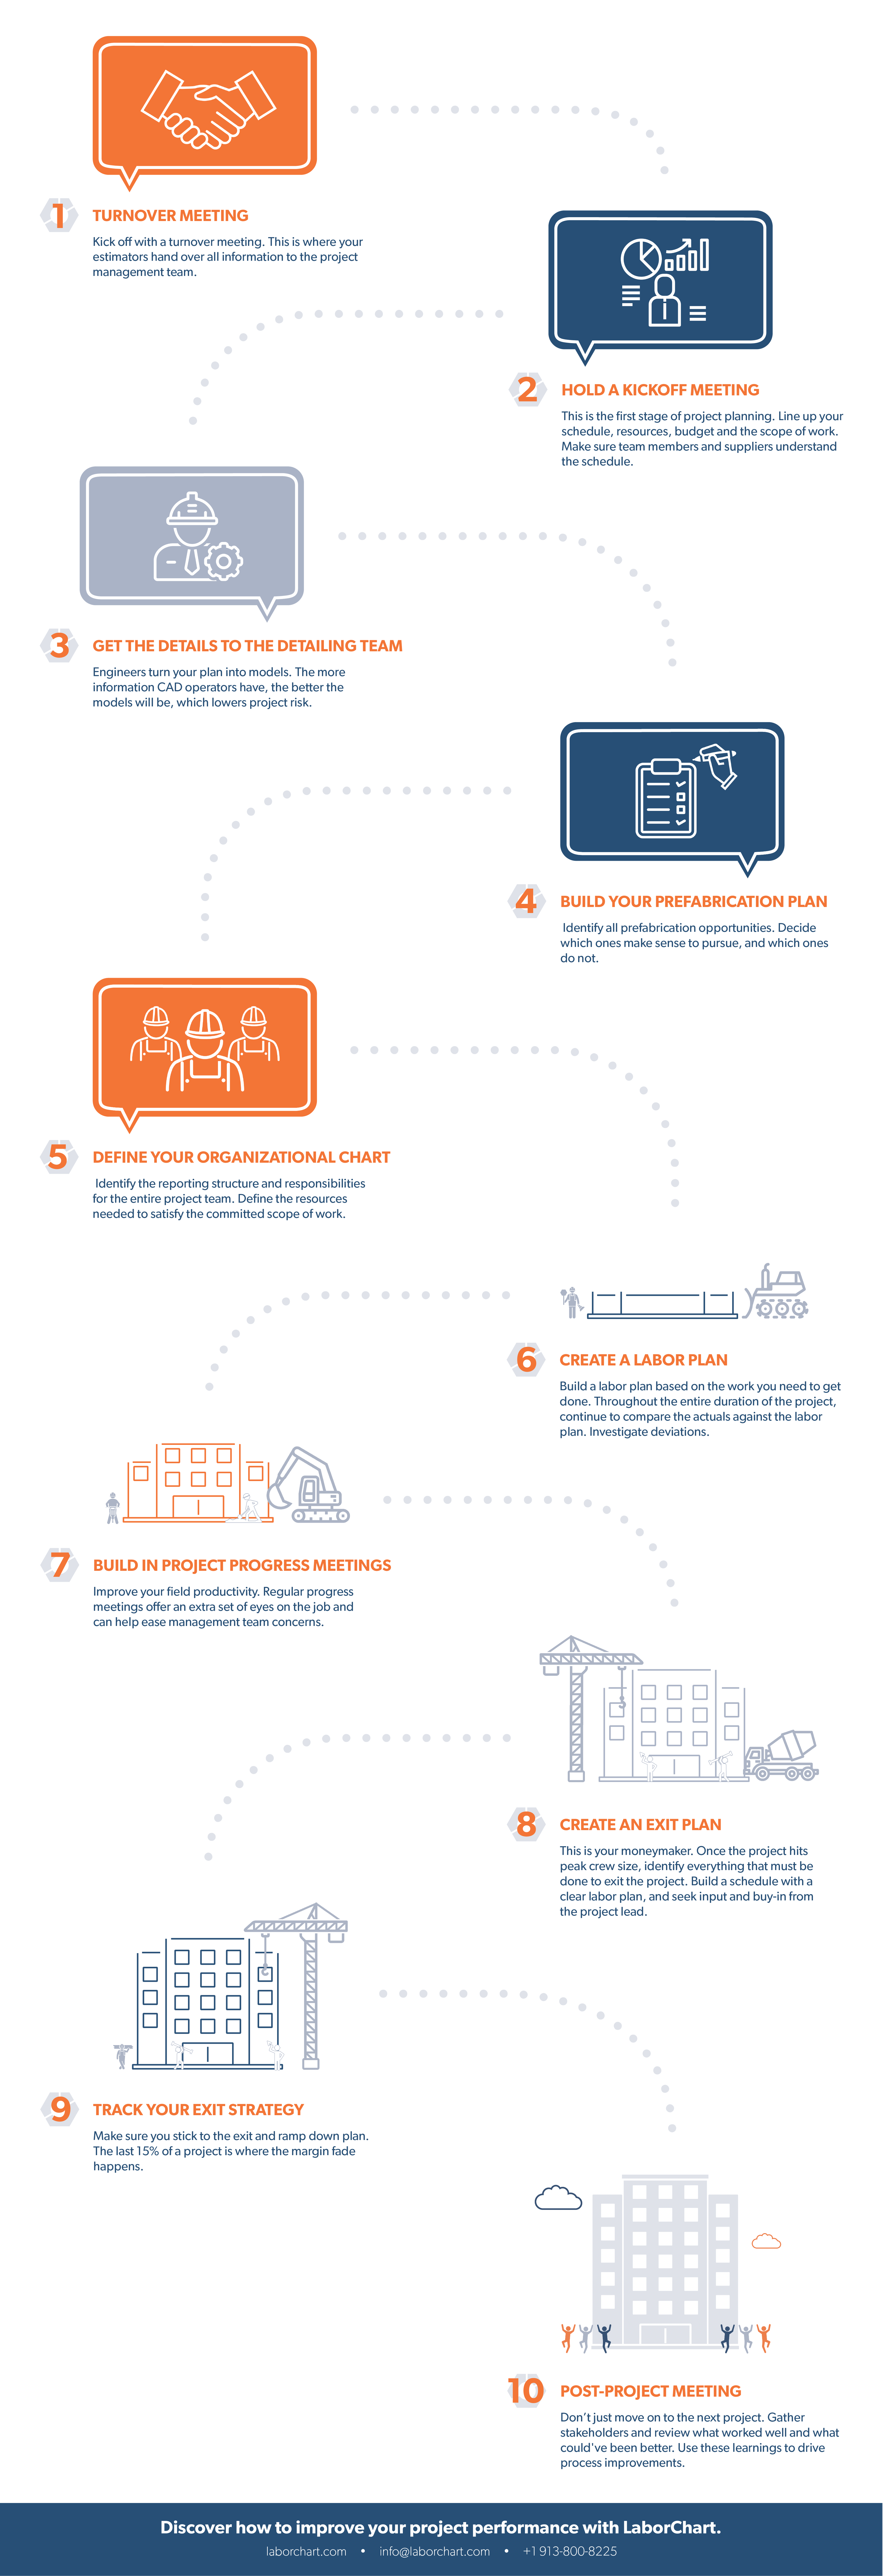 LaborChart infographic on the 10 step plan to improve project performance.